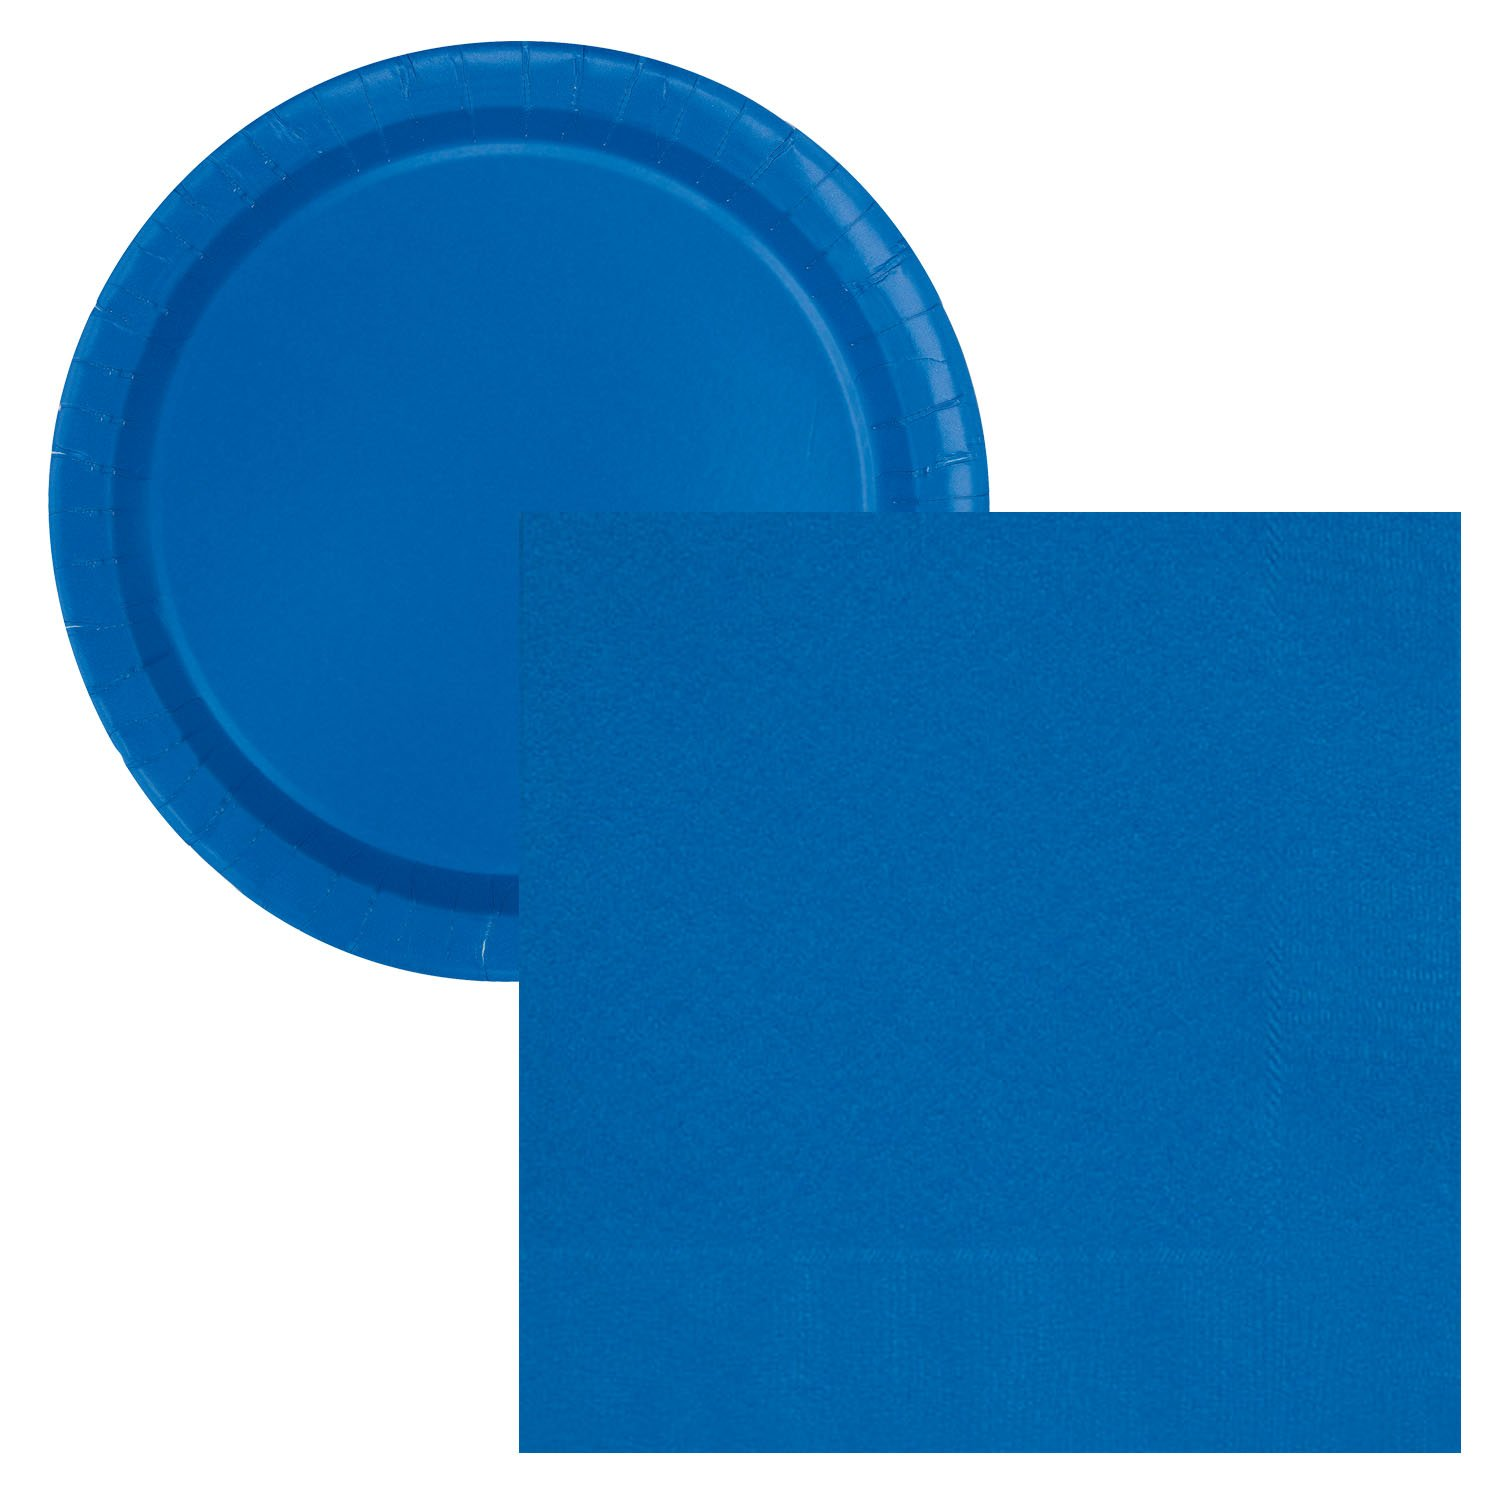 Caribbean Teal Lobyn Value Packs New Simple Solids Party Tableware Plate and Napkin Set Serves 16